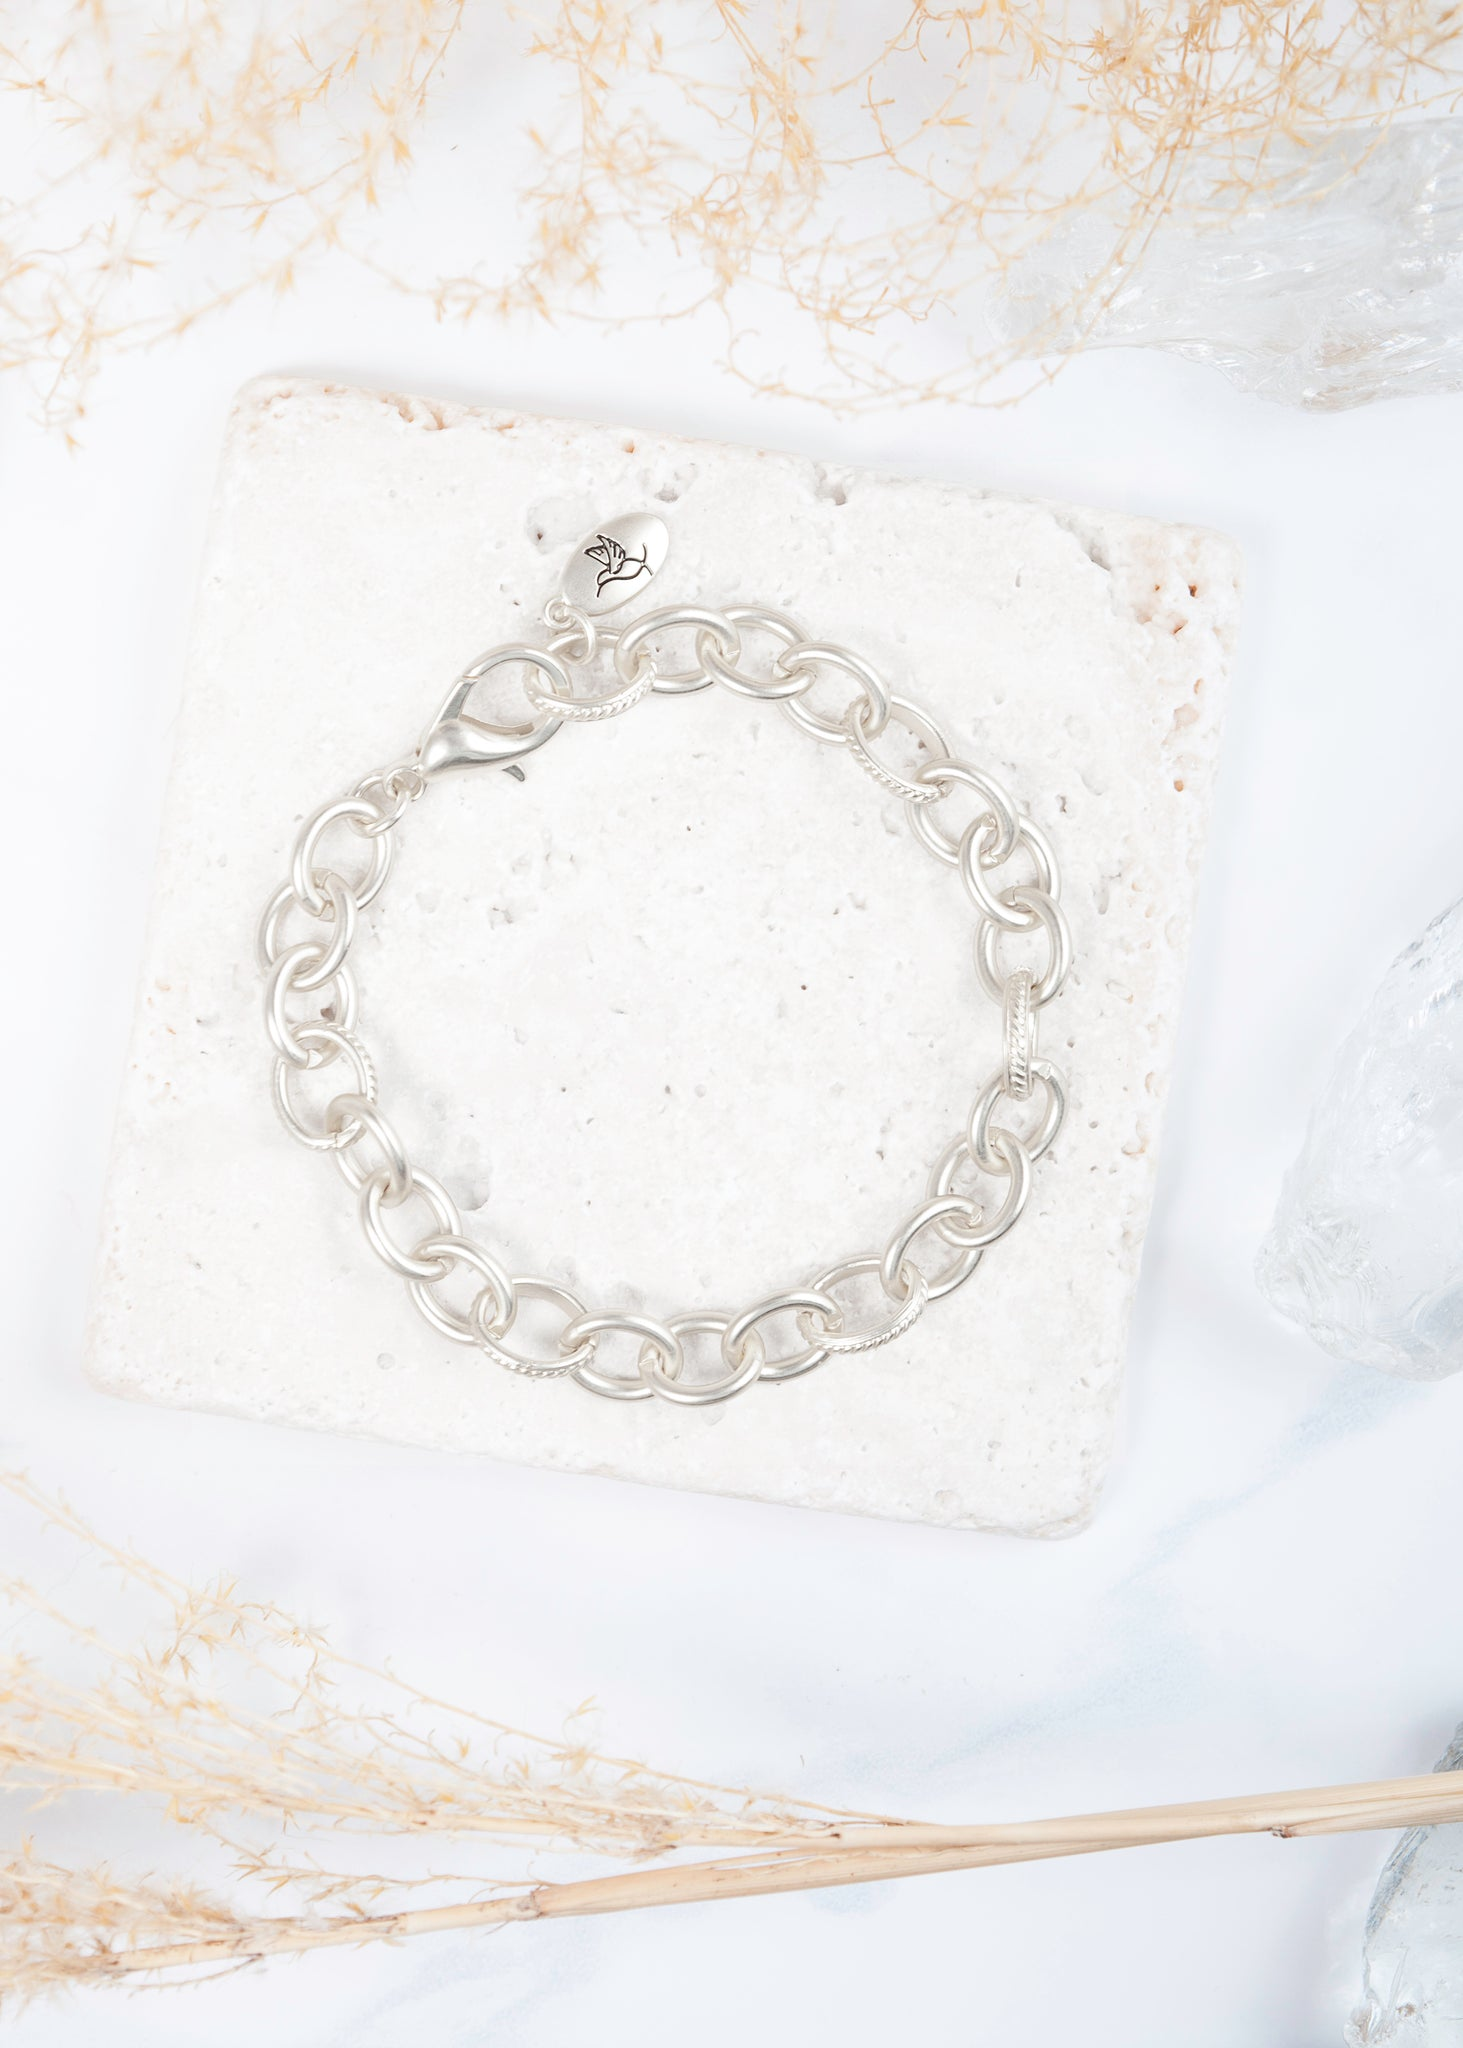 Heartfelt Emotions Chain Bracelet - Matte Silver